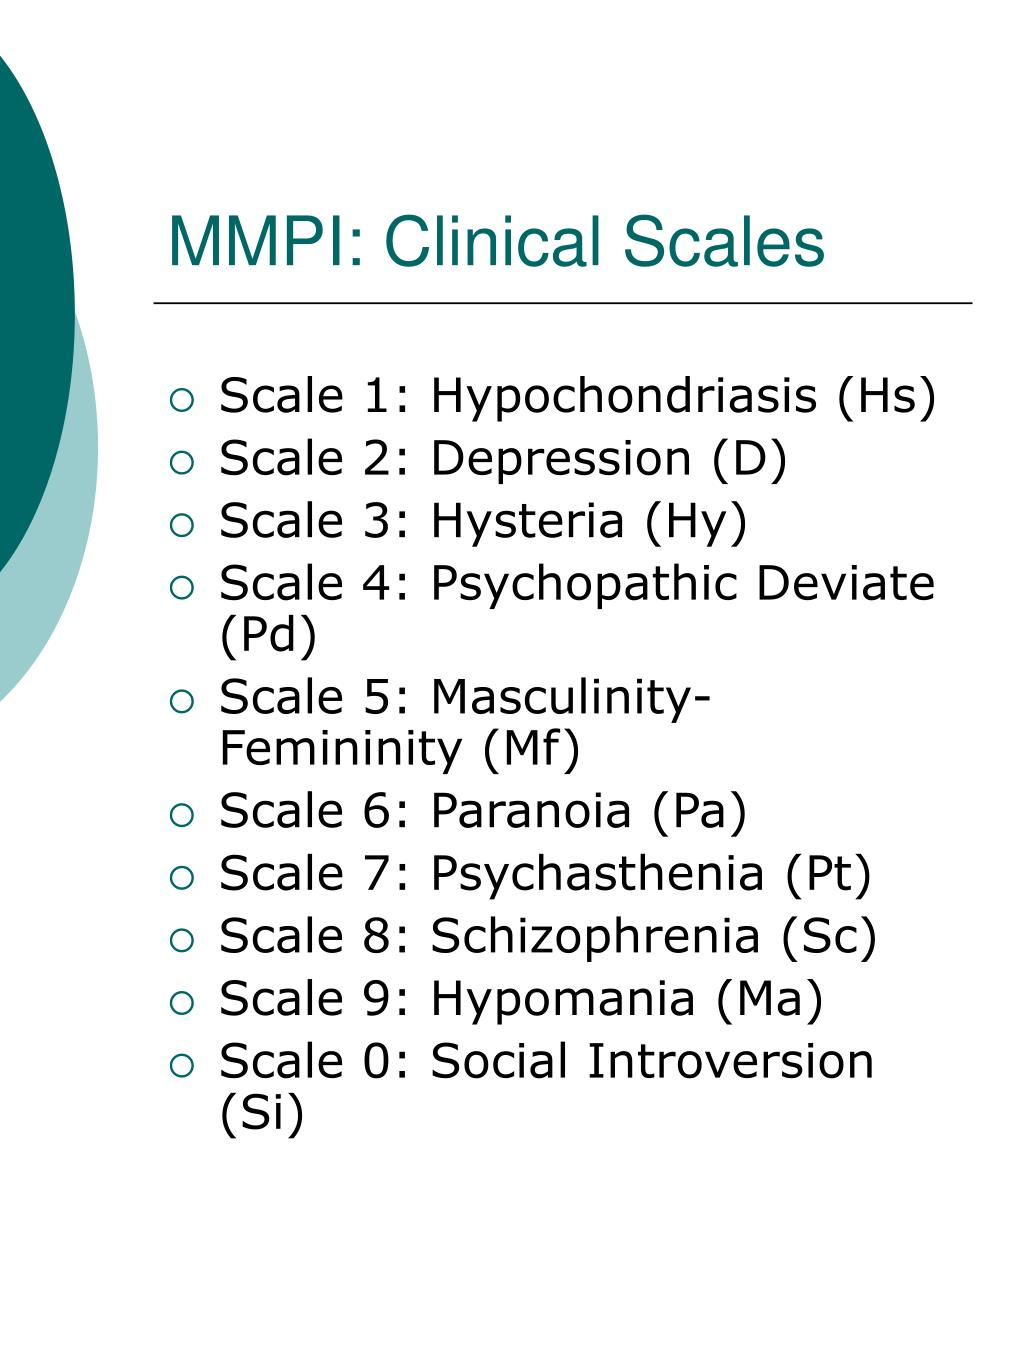 MMPI: Clinical Scales